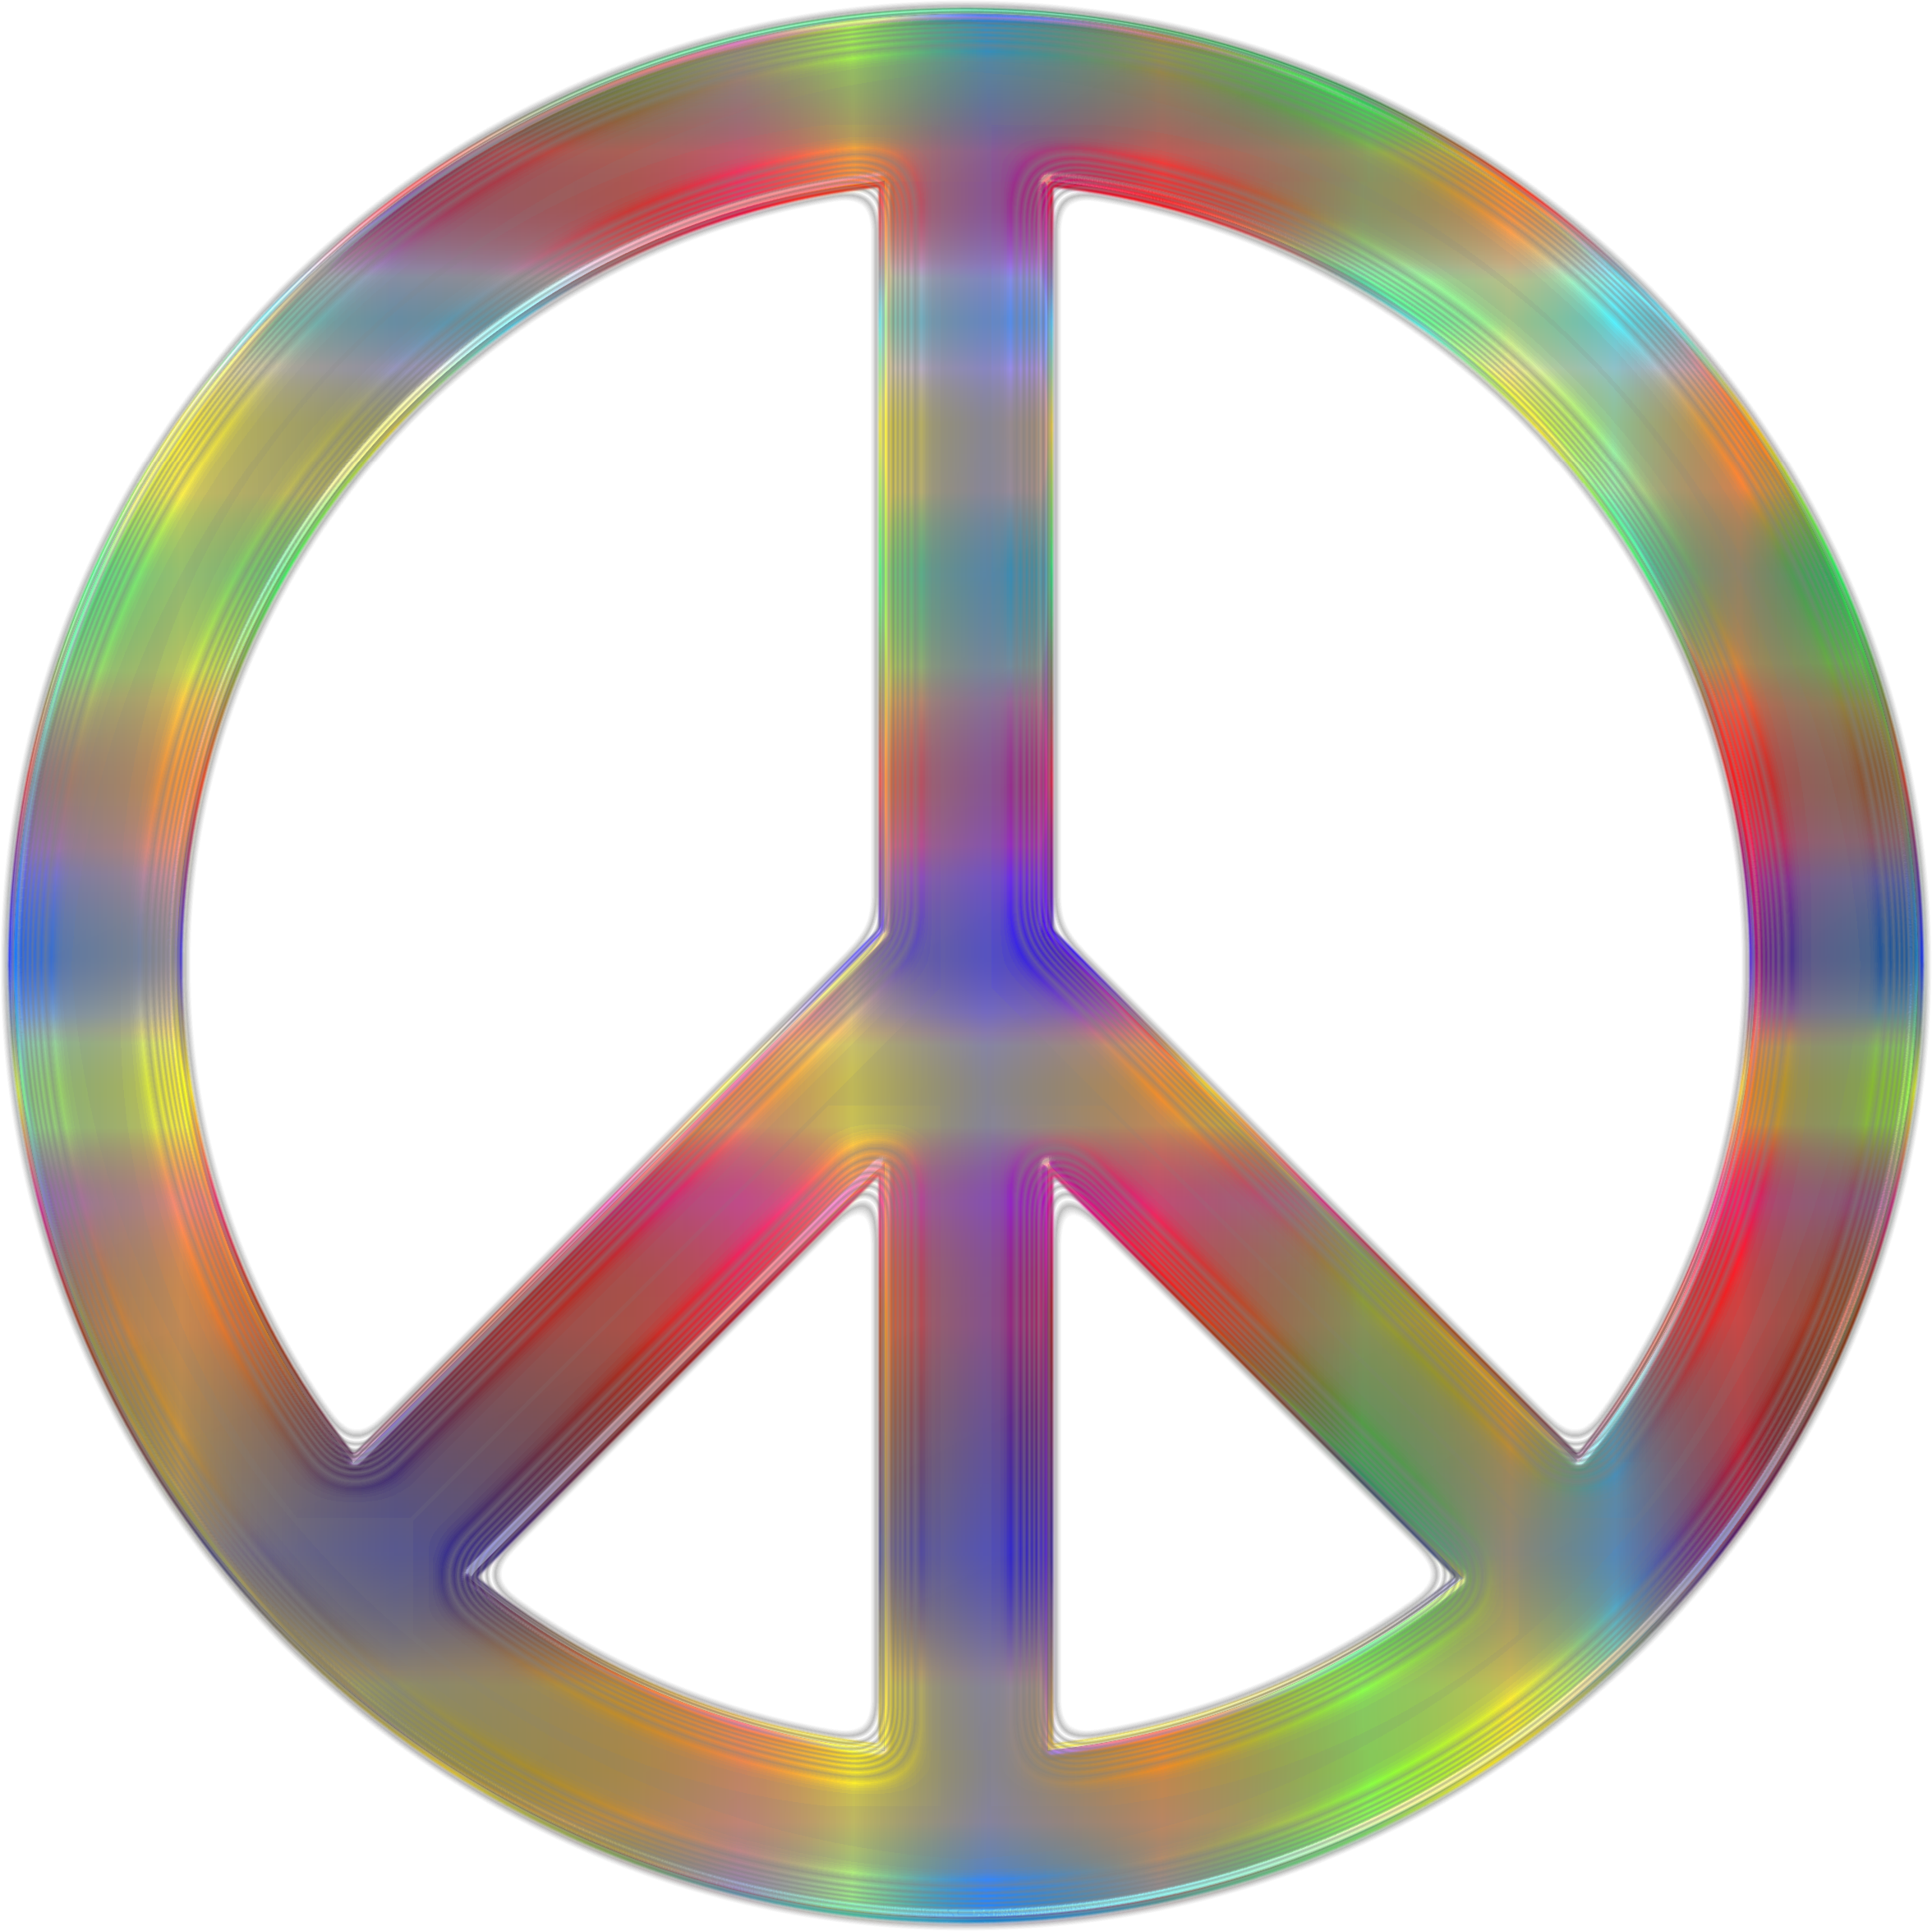 Psychedelic Peace Sign 2 by GDJ